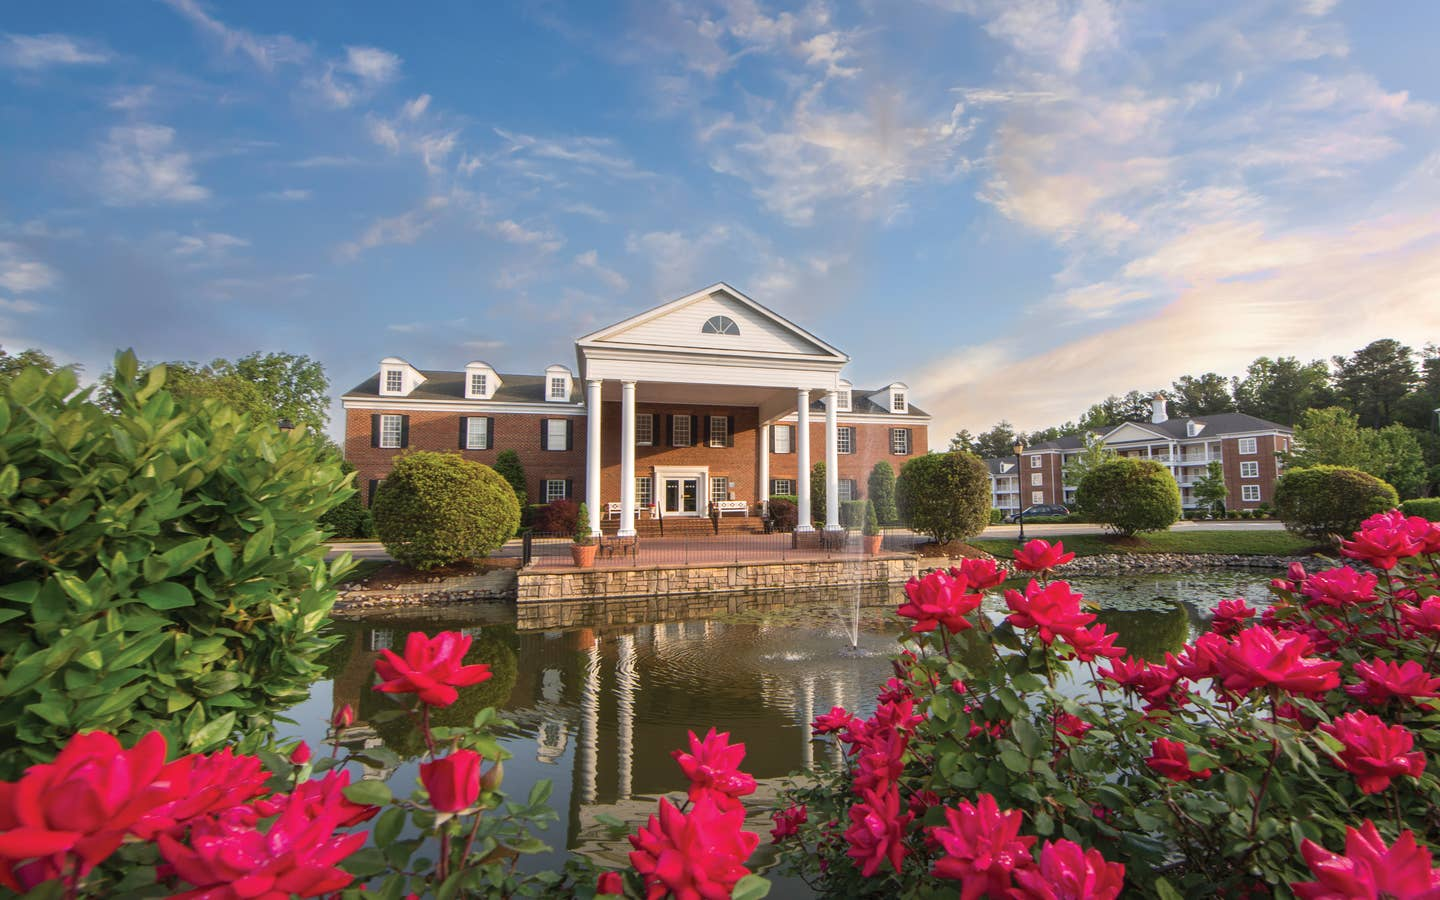 Property building surrounded by pink flowers at Williamsburg Resort in Virginia.